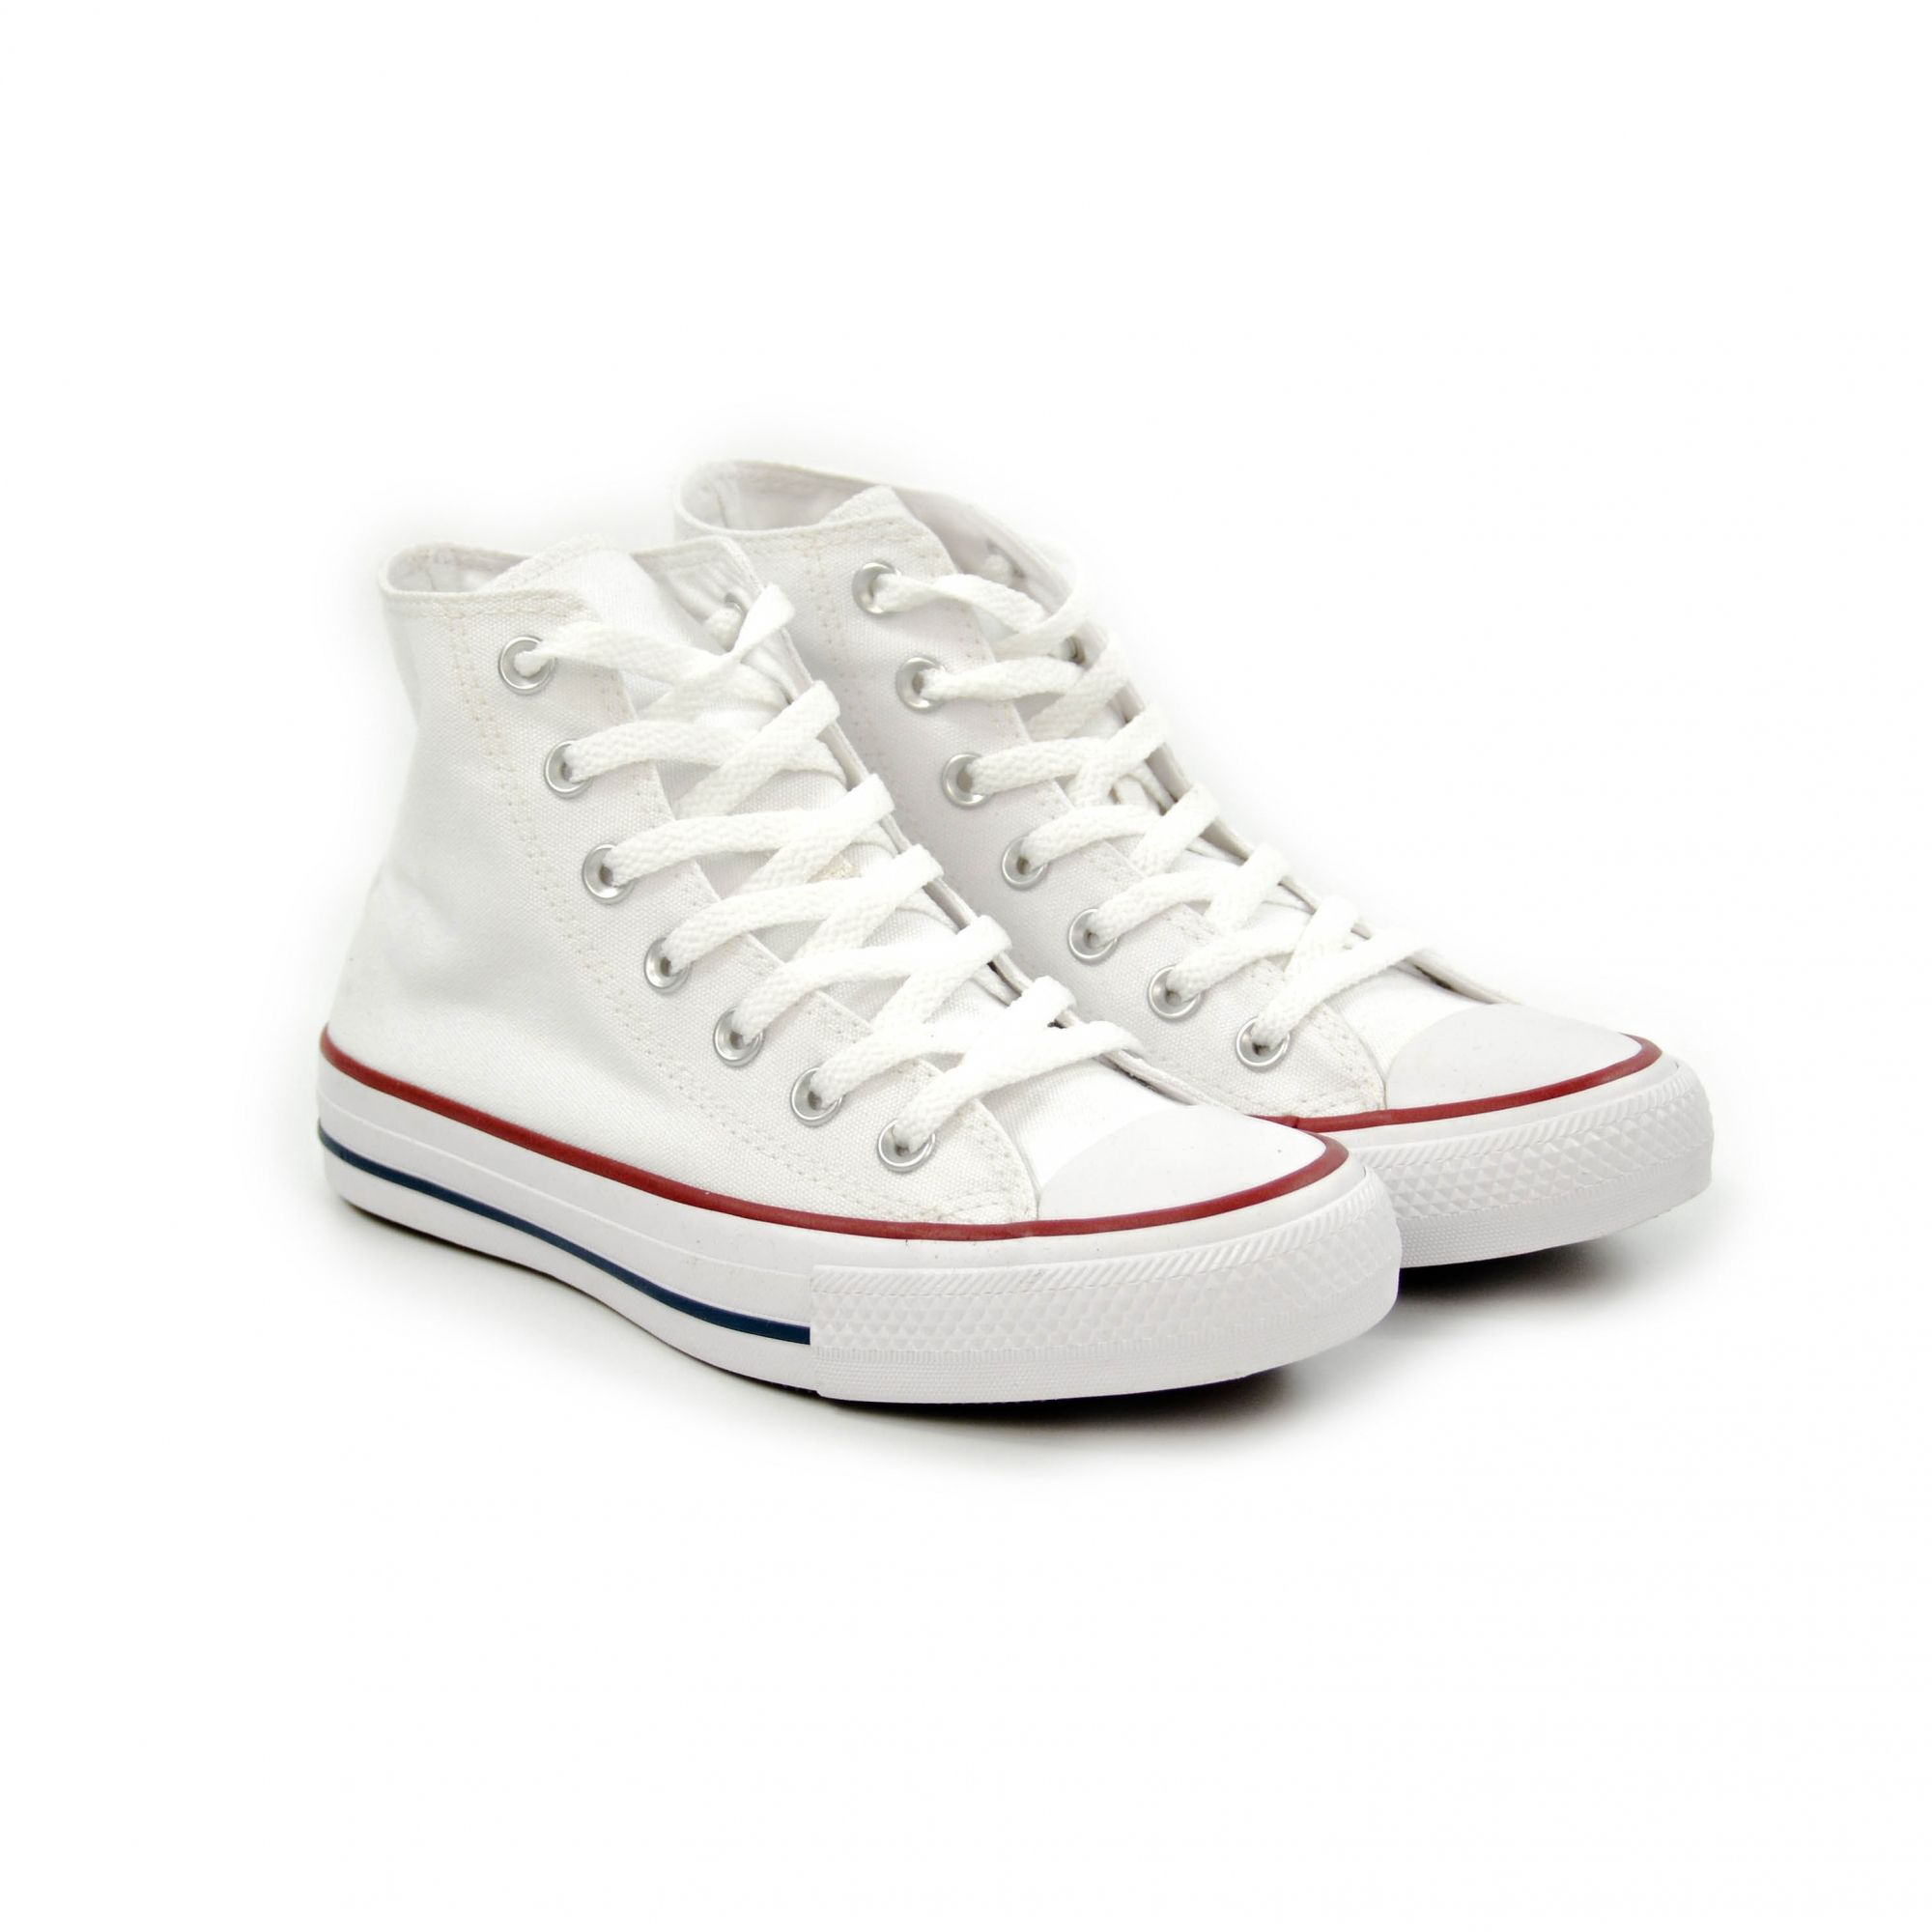 ABOTINADO CT00040001 BRANCO CHUCK TAYLOR ALL STAR 18267